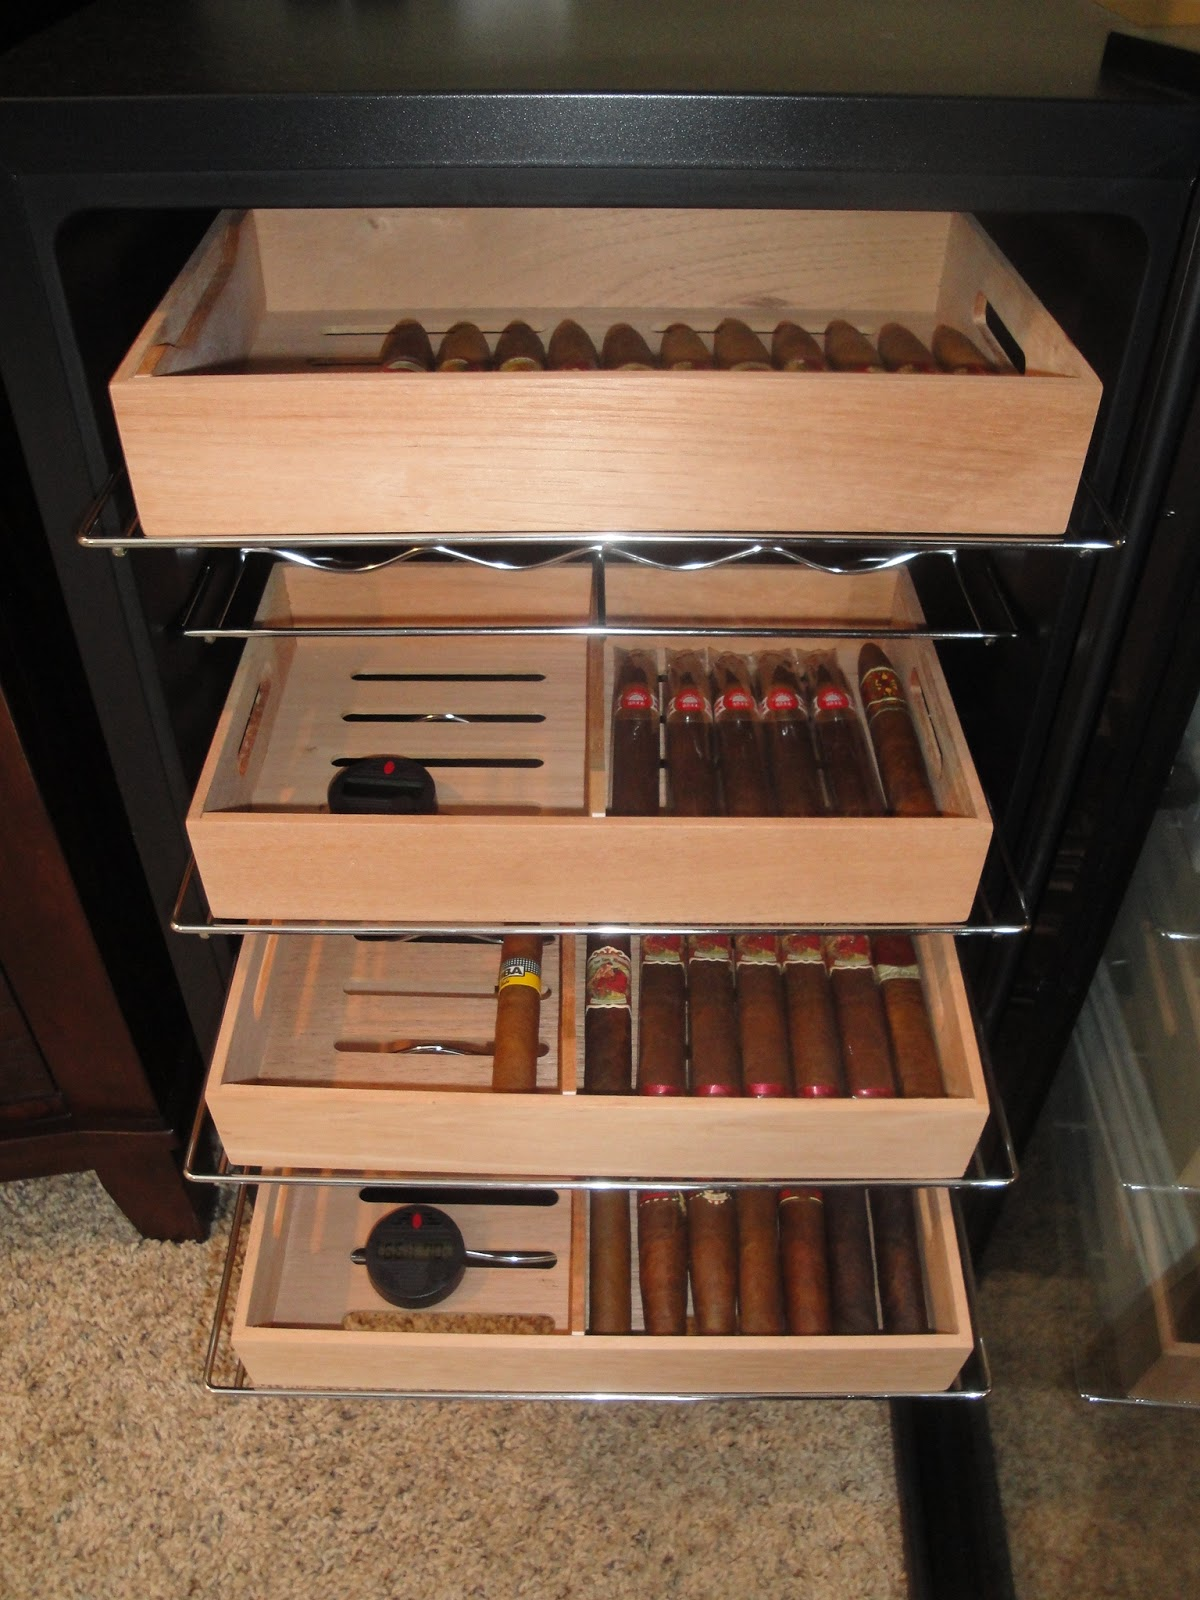 Wineador Wine Cooler To Cigar Humidor Conversion The Perfect Man Cave